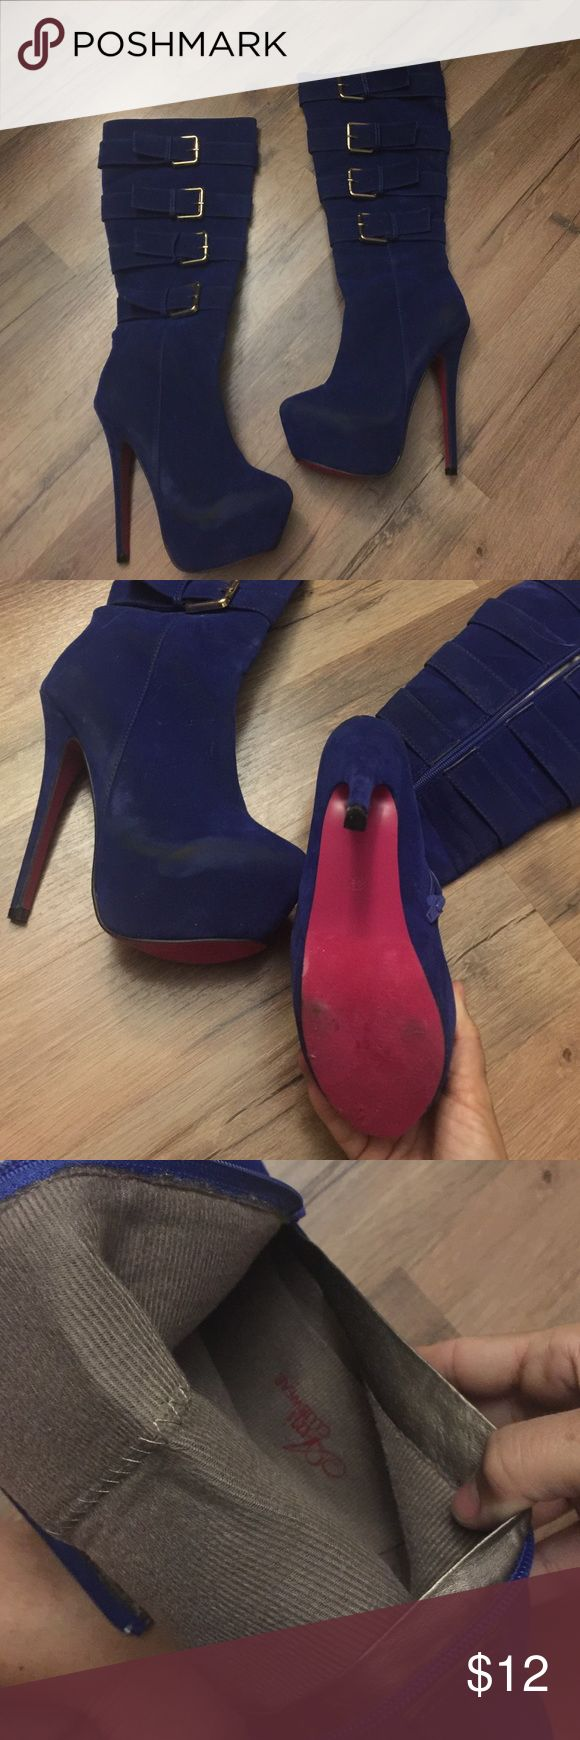 Royal blue stiletto knee high boots Brand ami club wear boots  , 6 inch heels -size 6.5 selling cheap due to the scuffing on shoe see photos - not sure if you can buff it out- but really when wearing in club does it matter ? 😋 ami clubwear Shoes Heeled Boots